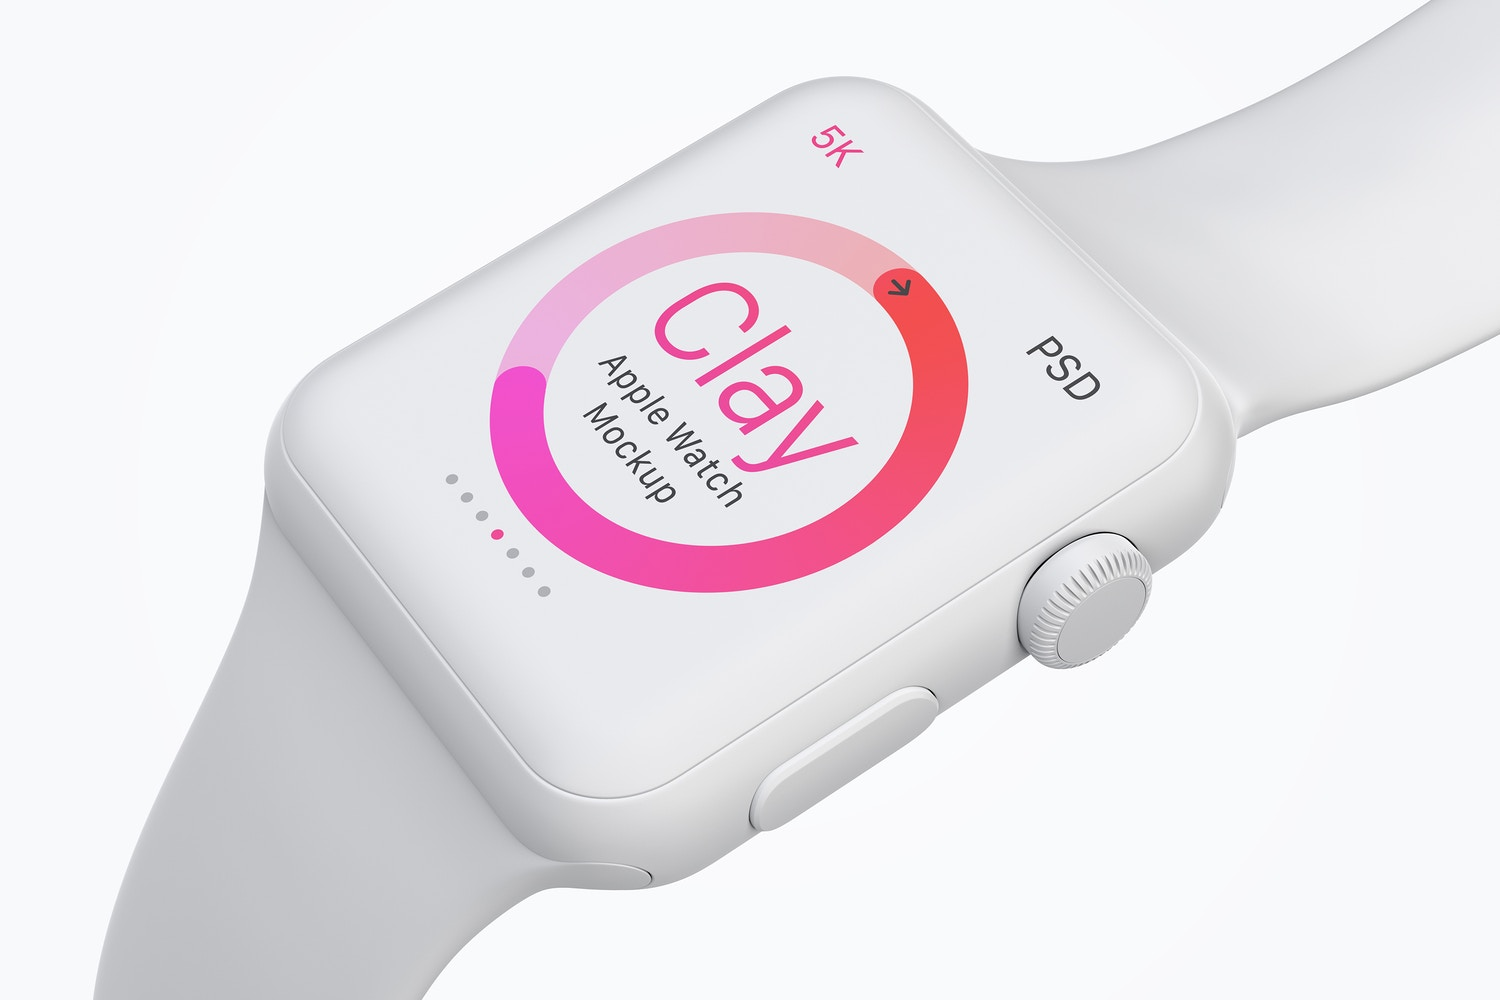 Clay Apple Watch Mockup 05 by Original Mockups on Original Mockups